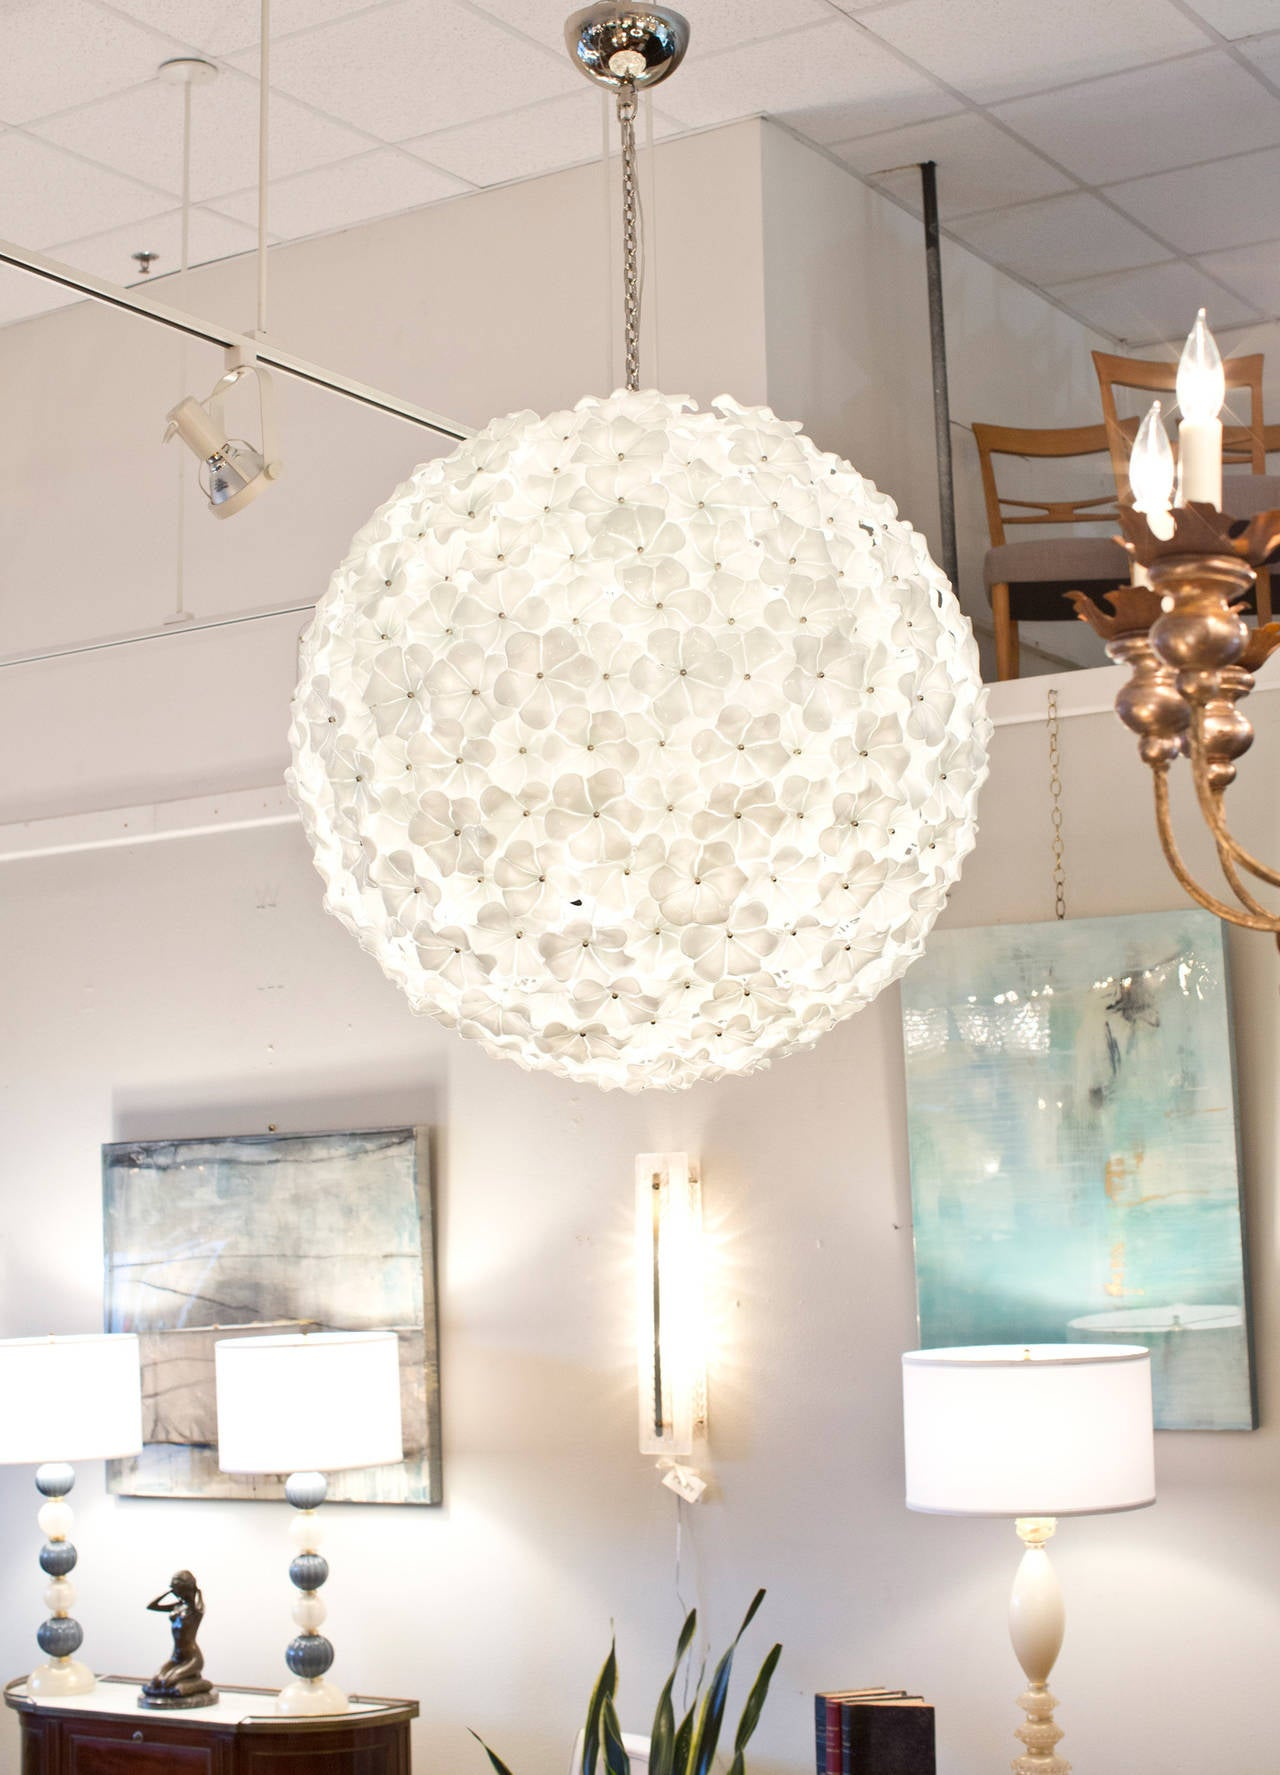 Monumental murano glass flower chandelier by cenedese for sale at gorgeous gigantic murano glass flower chandelier in opaline and clear glass 313 flowers made aloadofball Image collections